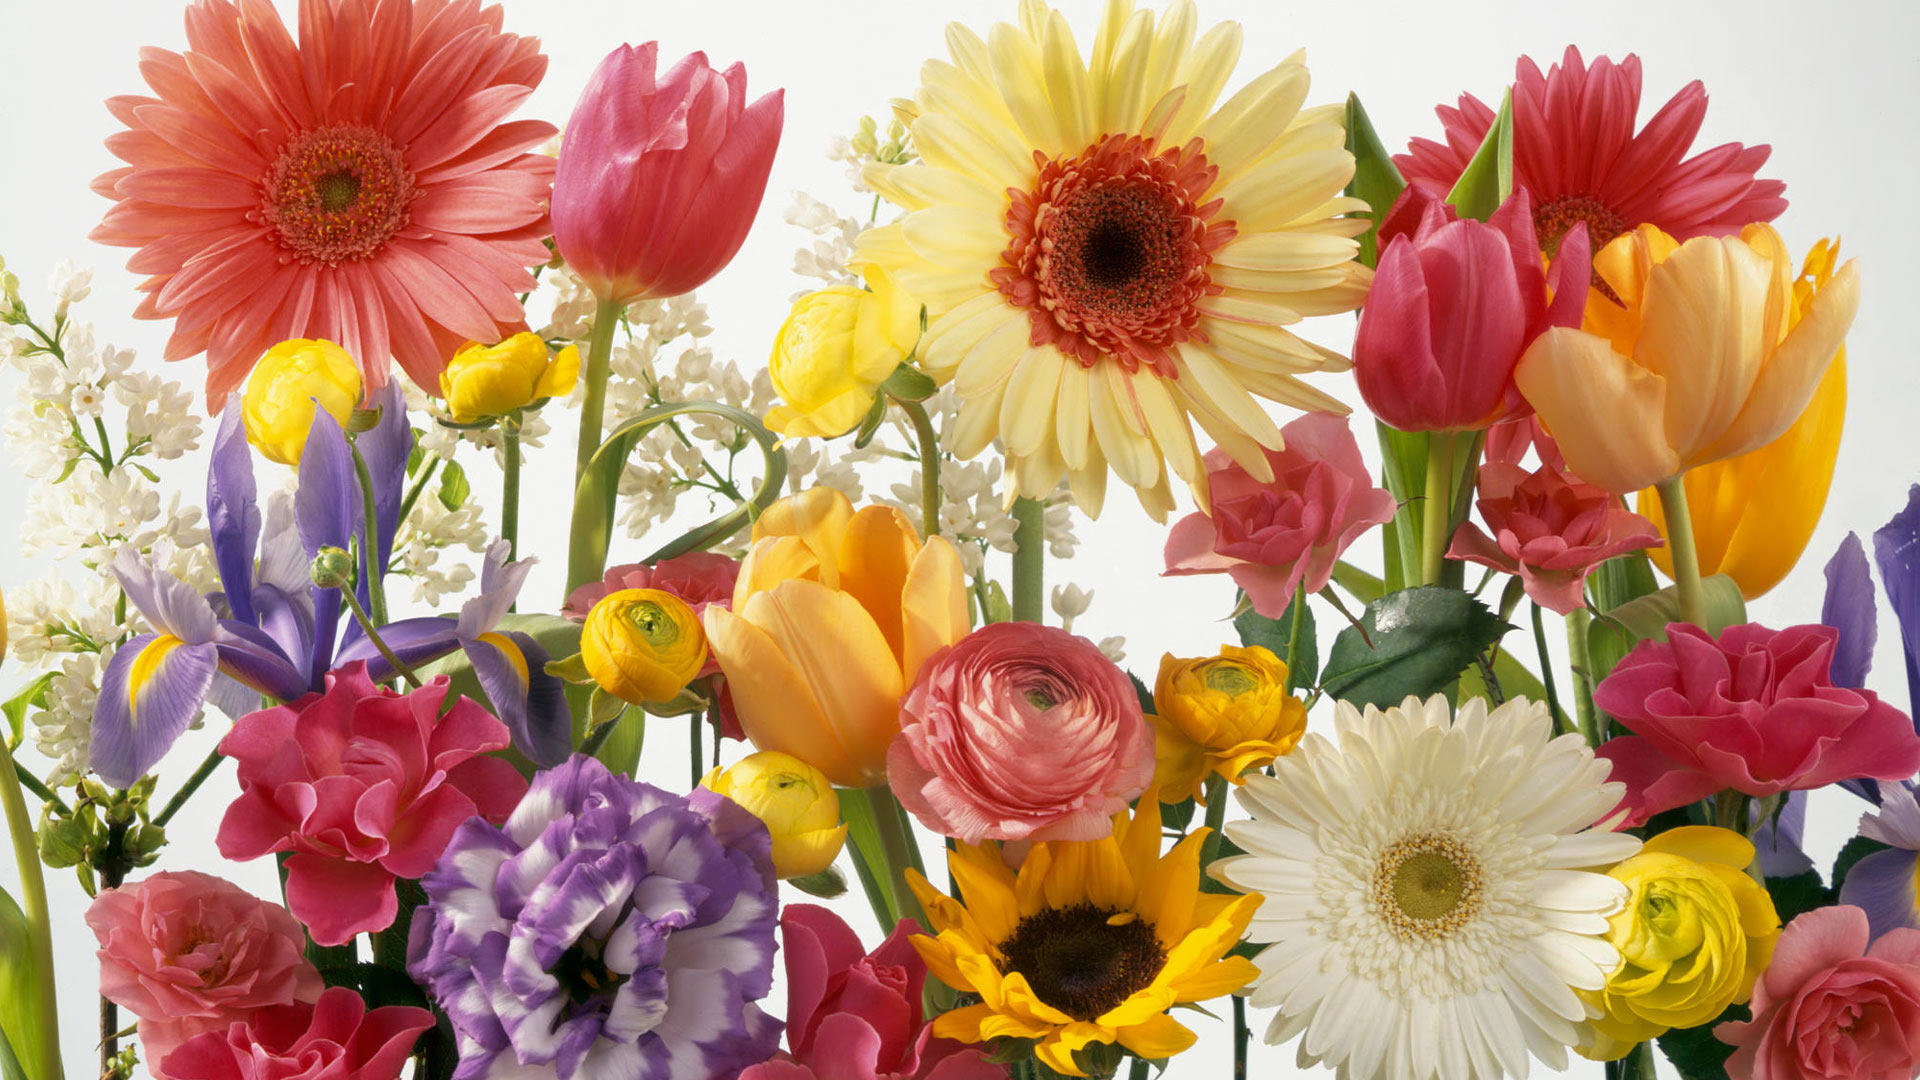 flowers spring wallpapers hd desktop background flowers 1920x1080